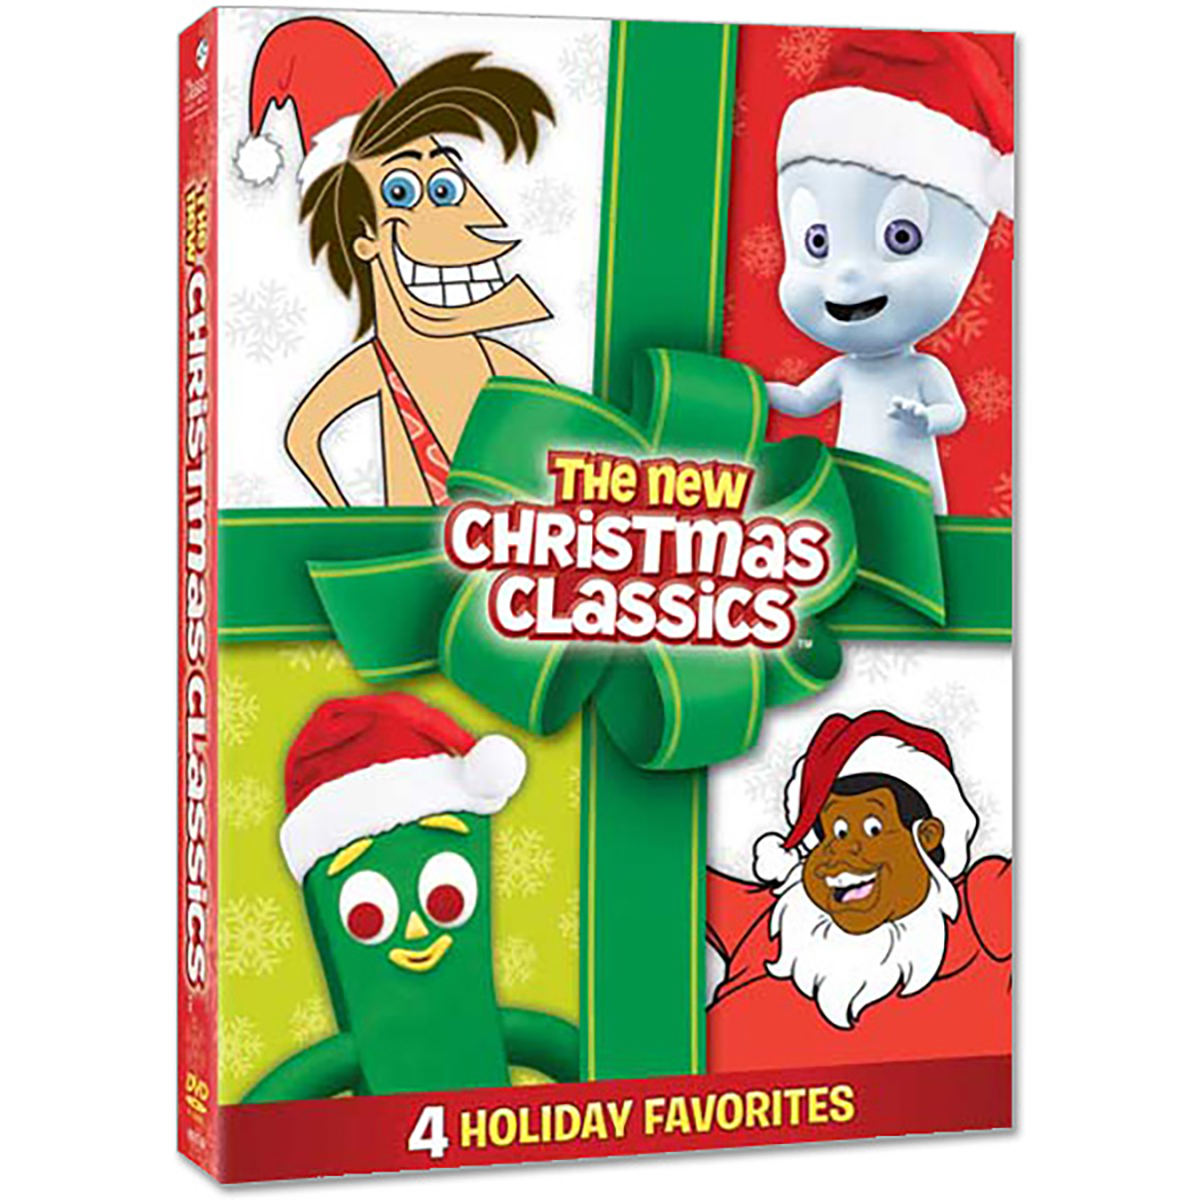 The New Christmas Classics DVD: Gumby Movie & more!